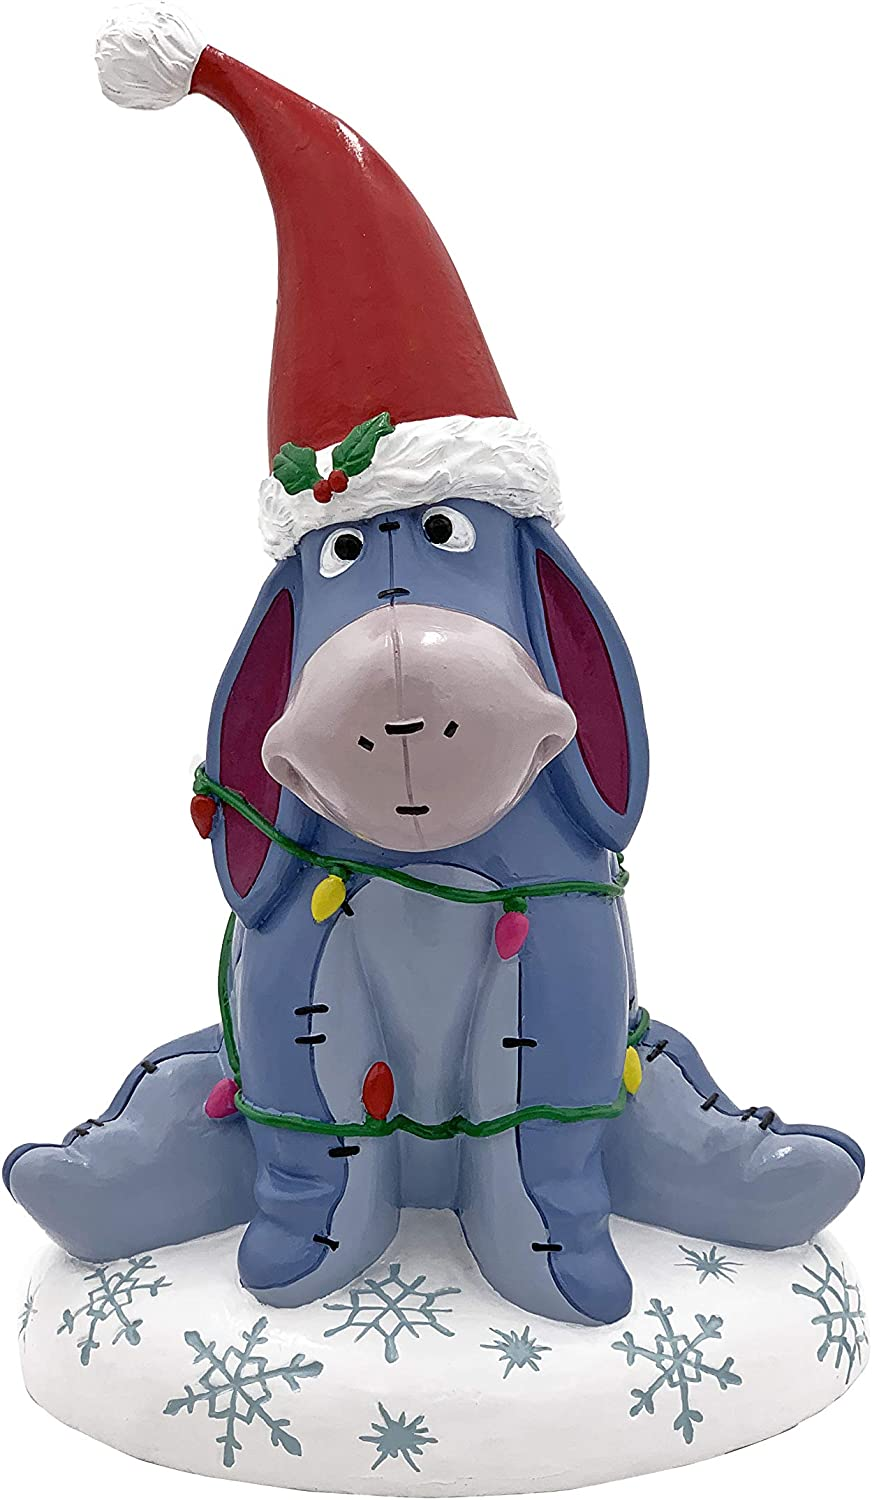 Disney Eeyore of Winnie The Pooh Wrapped in Christmas Lights Garden Statue, Stands 10 Inches Tall and 7 Inches Wide.